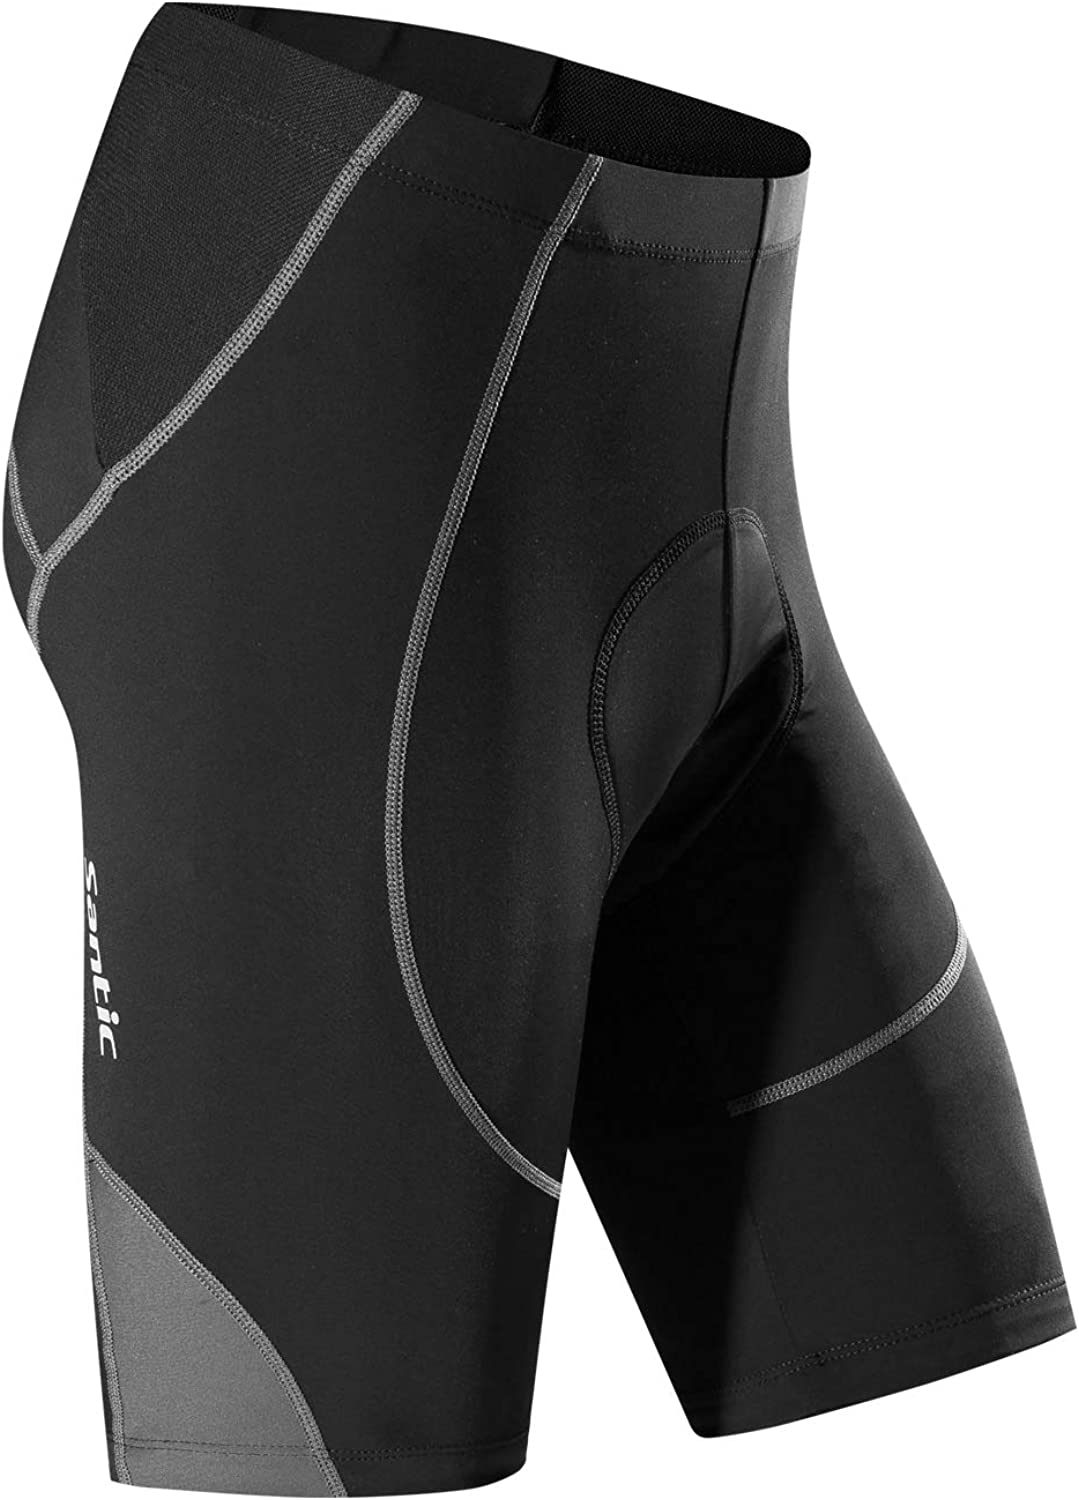 Santic Cycling Shorts Men's Bike Biking Bicycle Pants Tights 4D Coolmax Padded